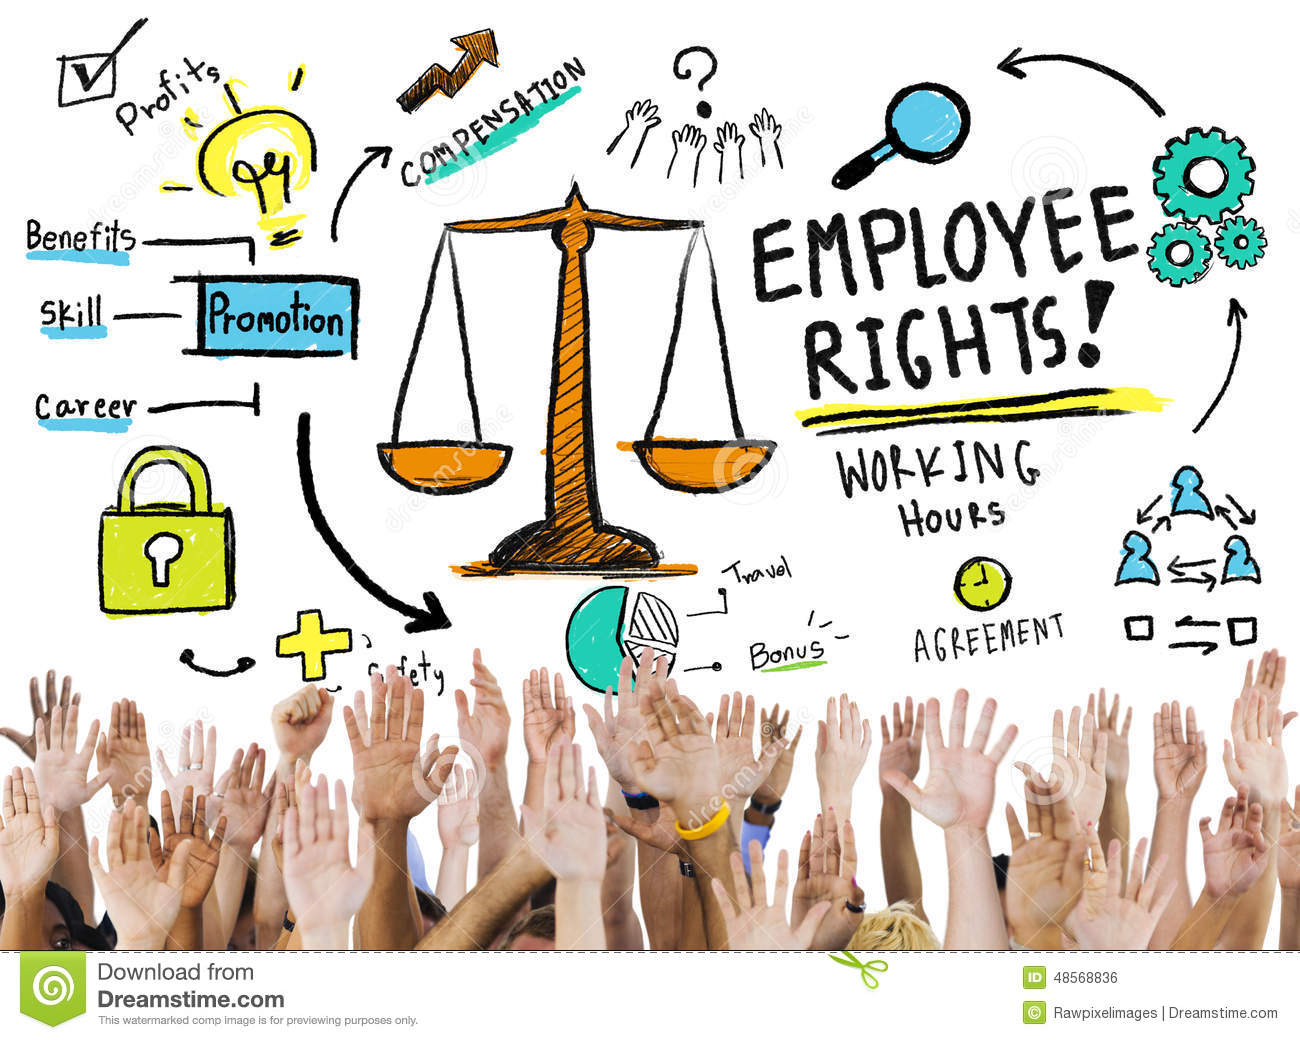 employee rights employment equality job hands volunteer concept employee rights employment equality job hands volunteer concept